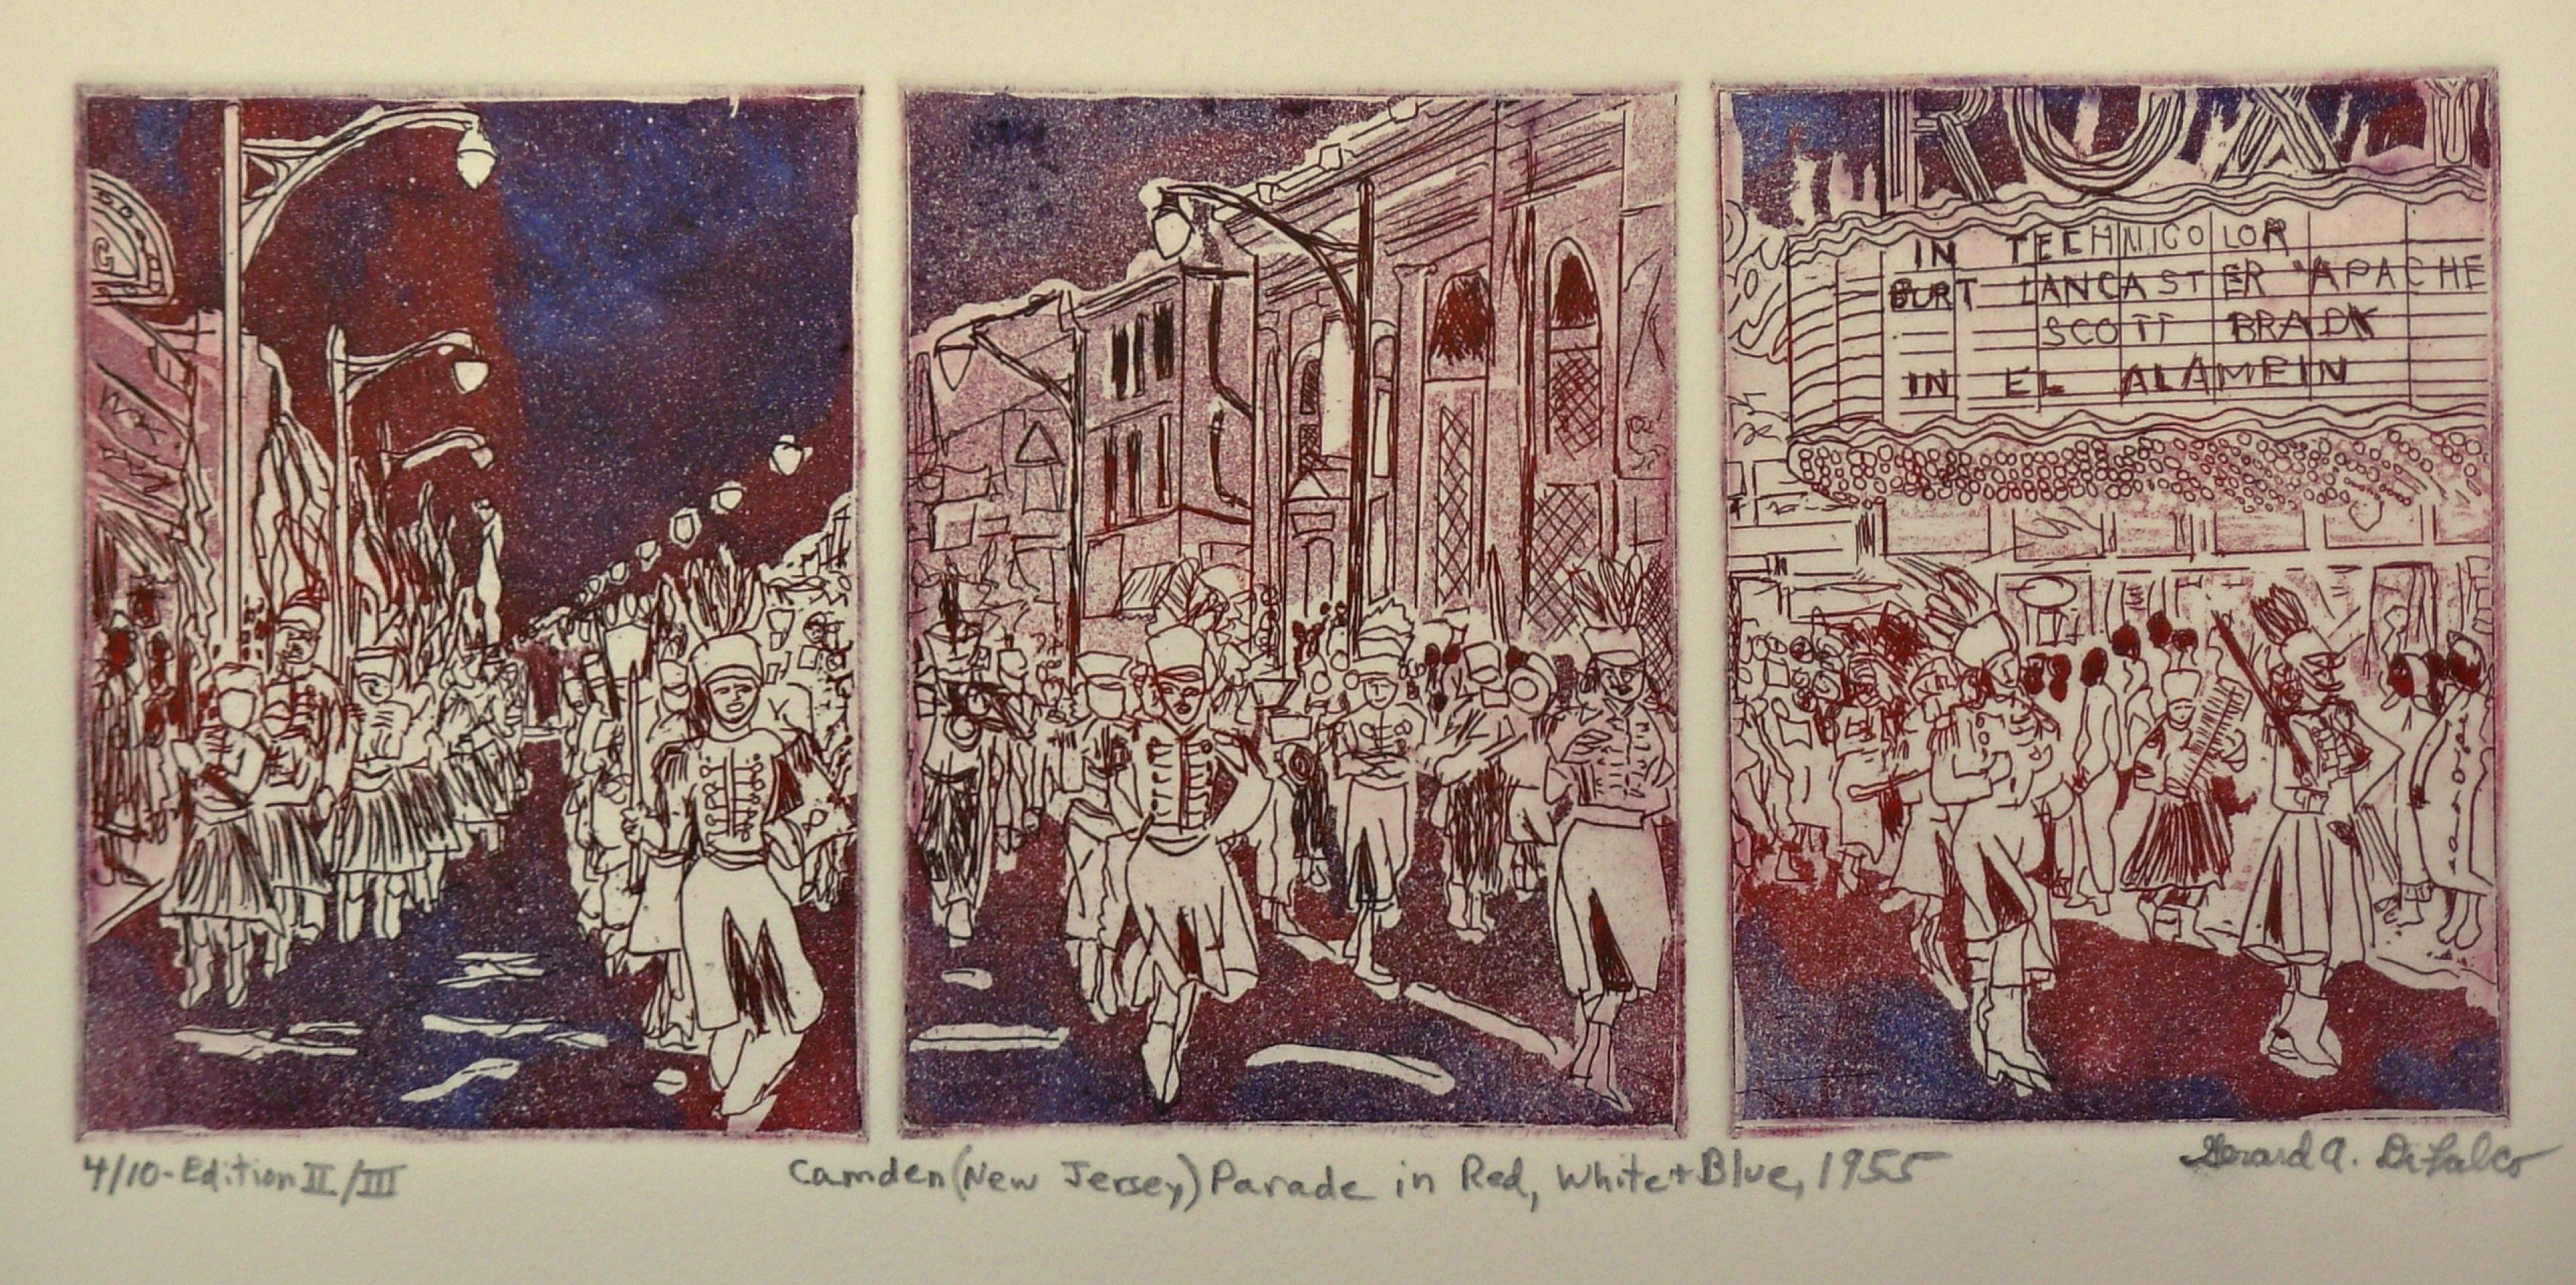 Jerry  Di Falco Artwork Camden New Jersey Parade in Red White and Blue 1955, 2014 Intaglio, Americana